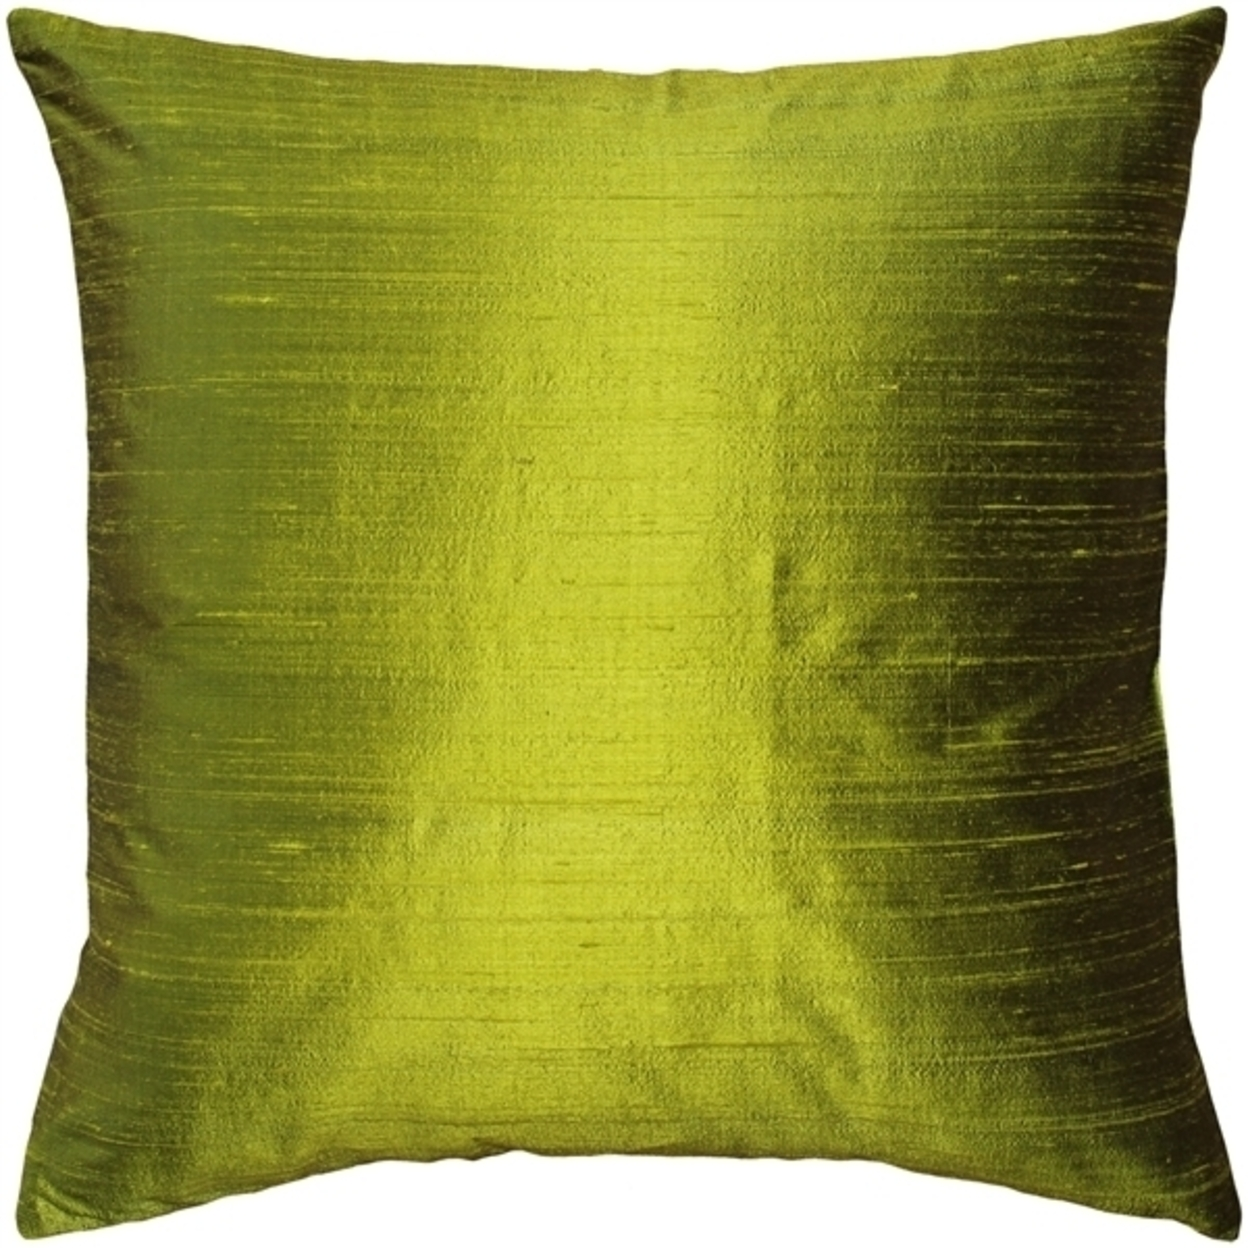 Pillow Decor Sankara Chartreuse Green Silk Throw Pillow 18x18